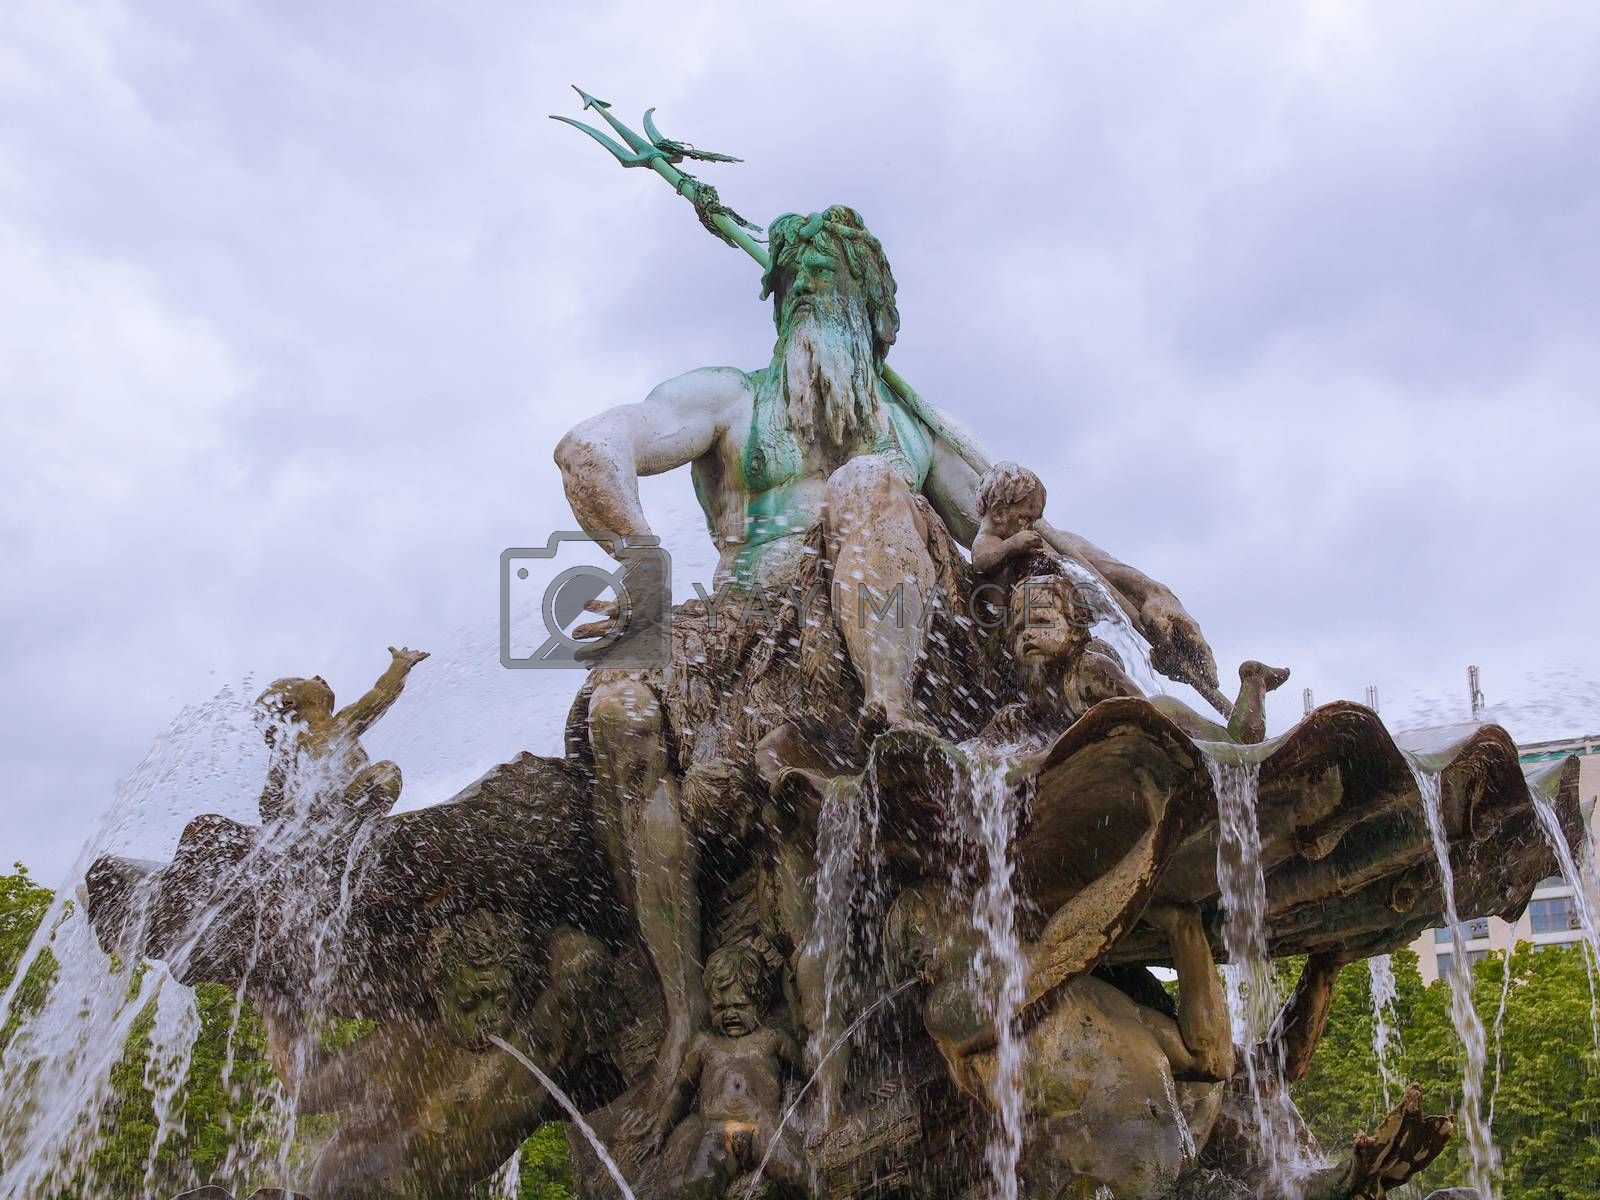 Royalty free image of Neptunbrunnen fountain in Berlin by claudiodivizia